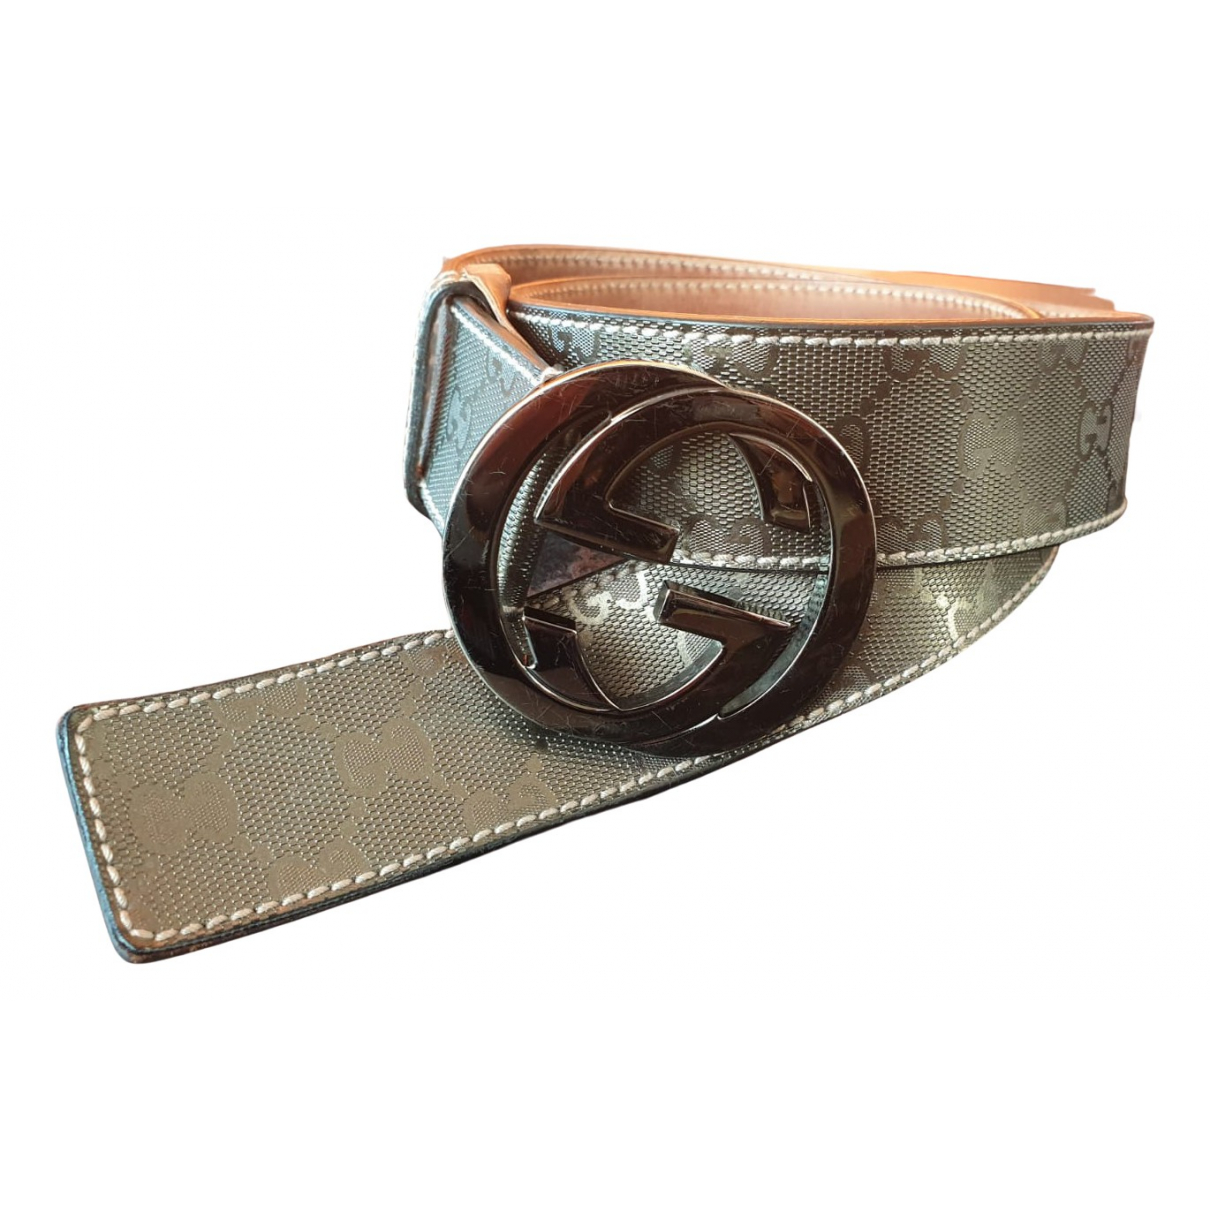 Gucci Interlocking Buckle Metallic Leather belt for Women 95 cm